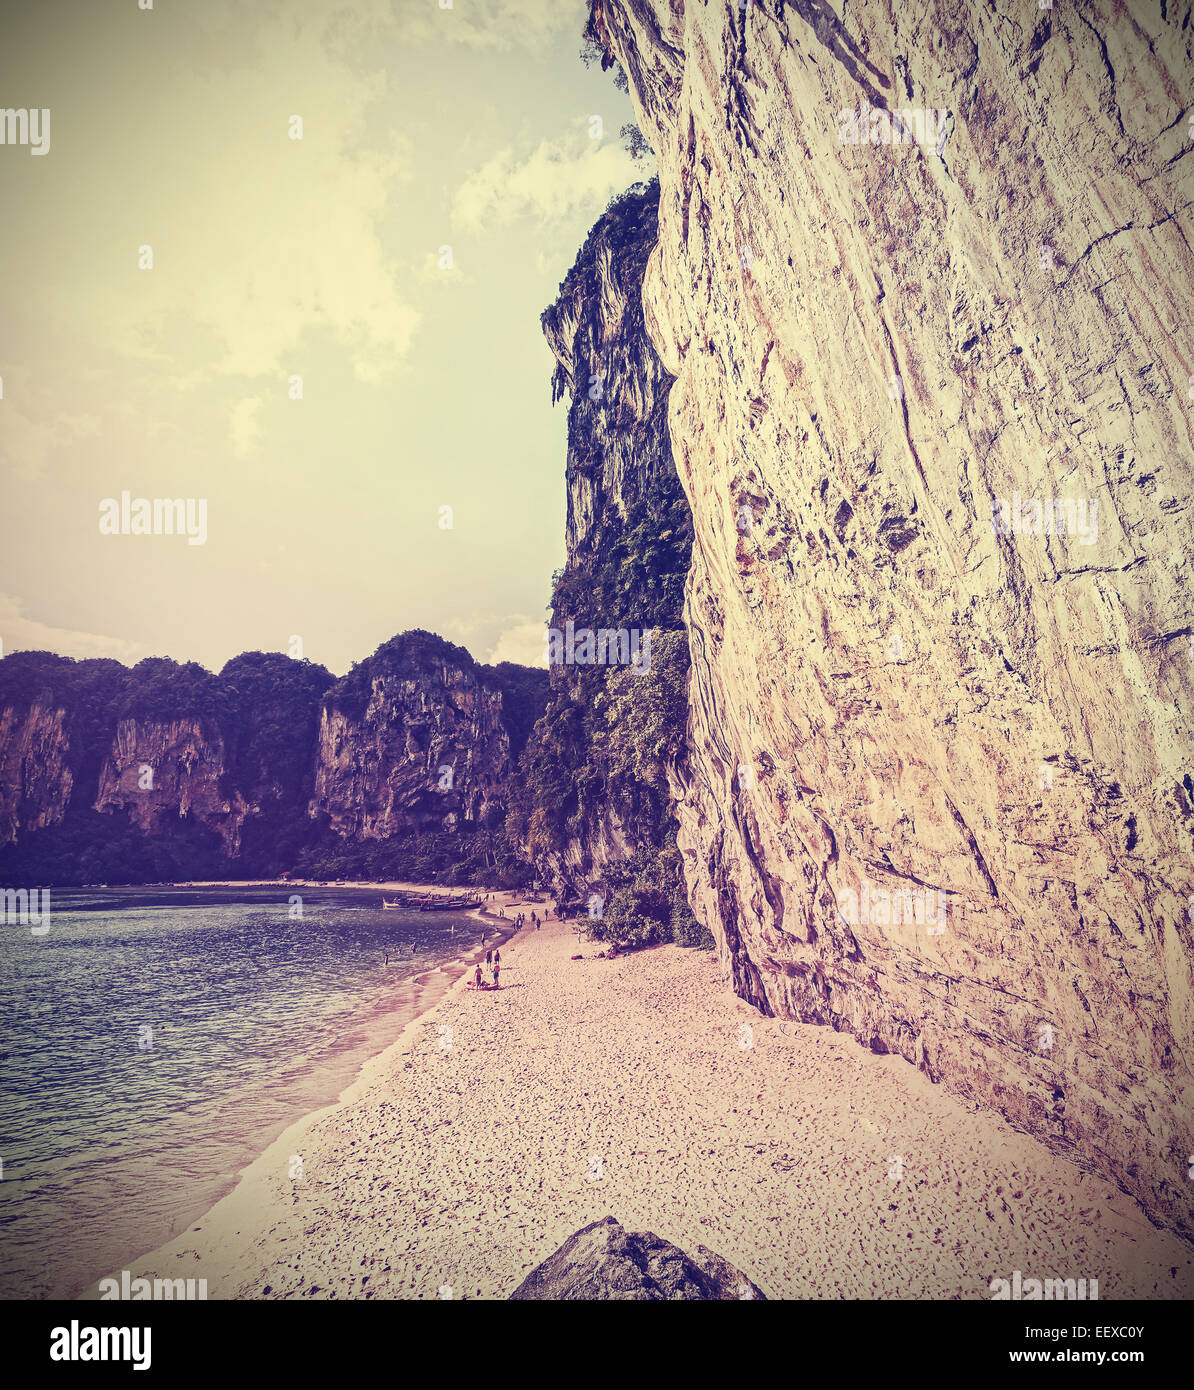 Retro vintage filtered picture of a cliff beach. - Stock Image